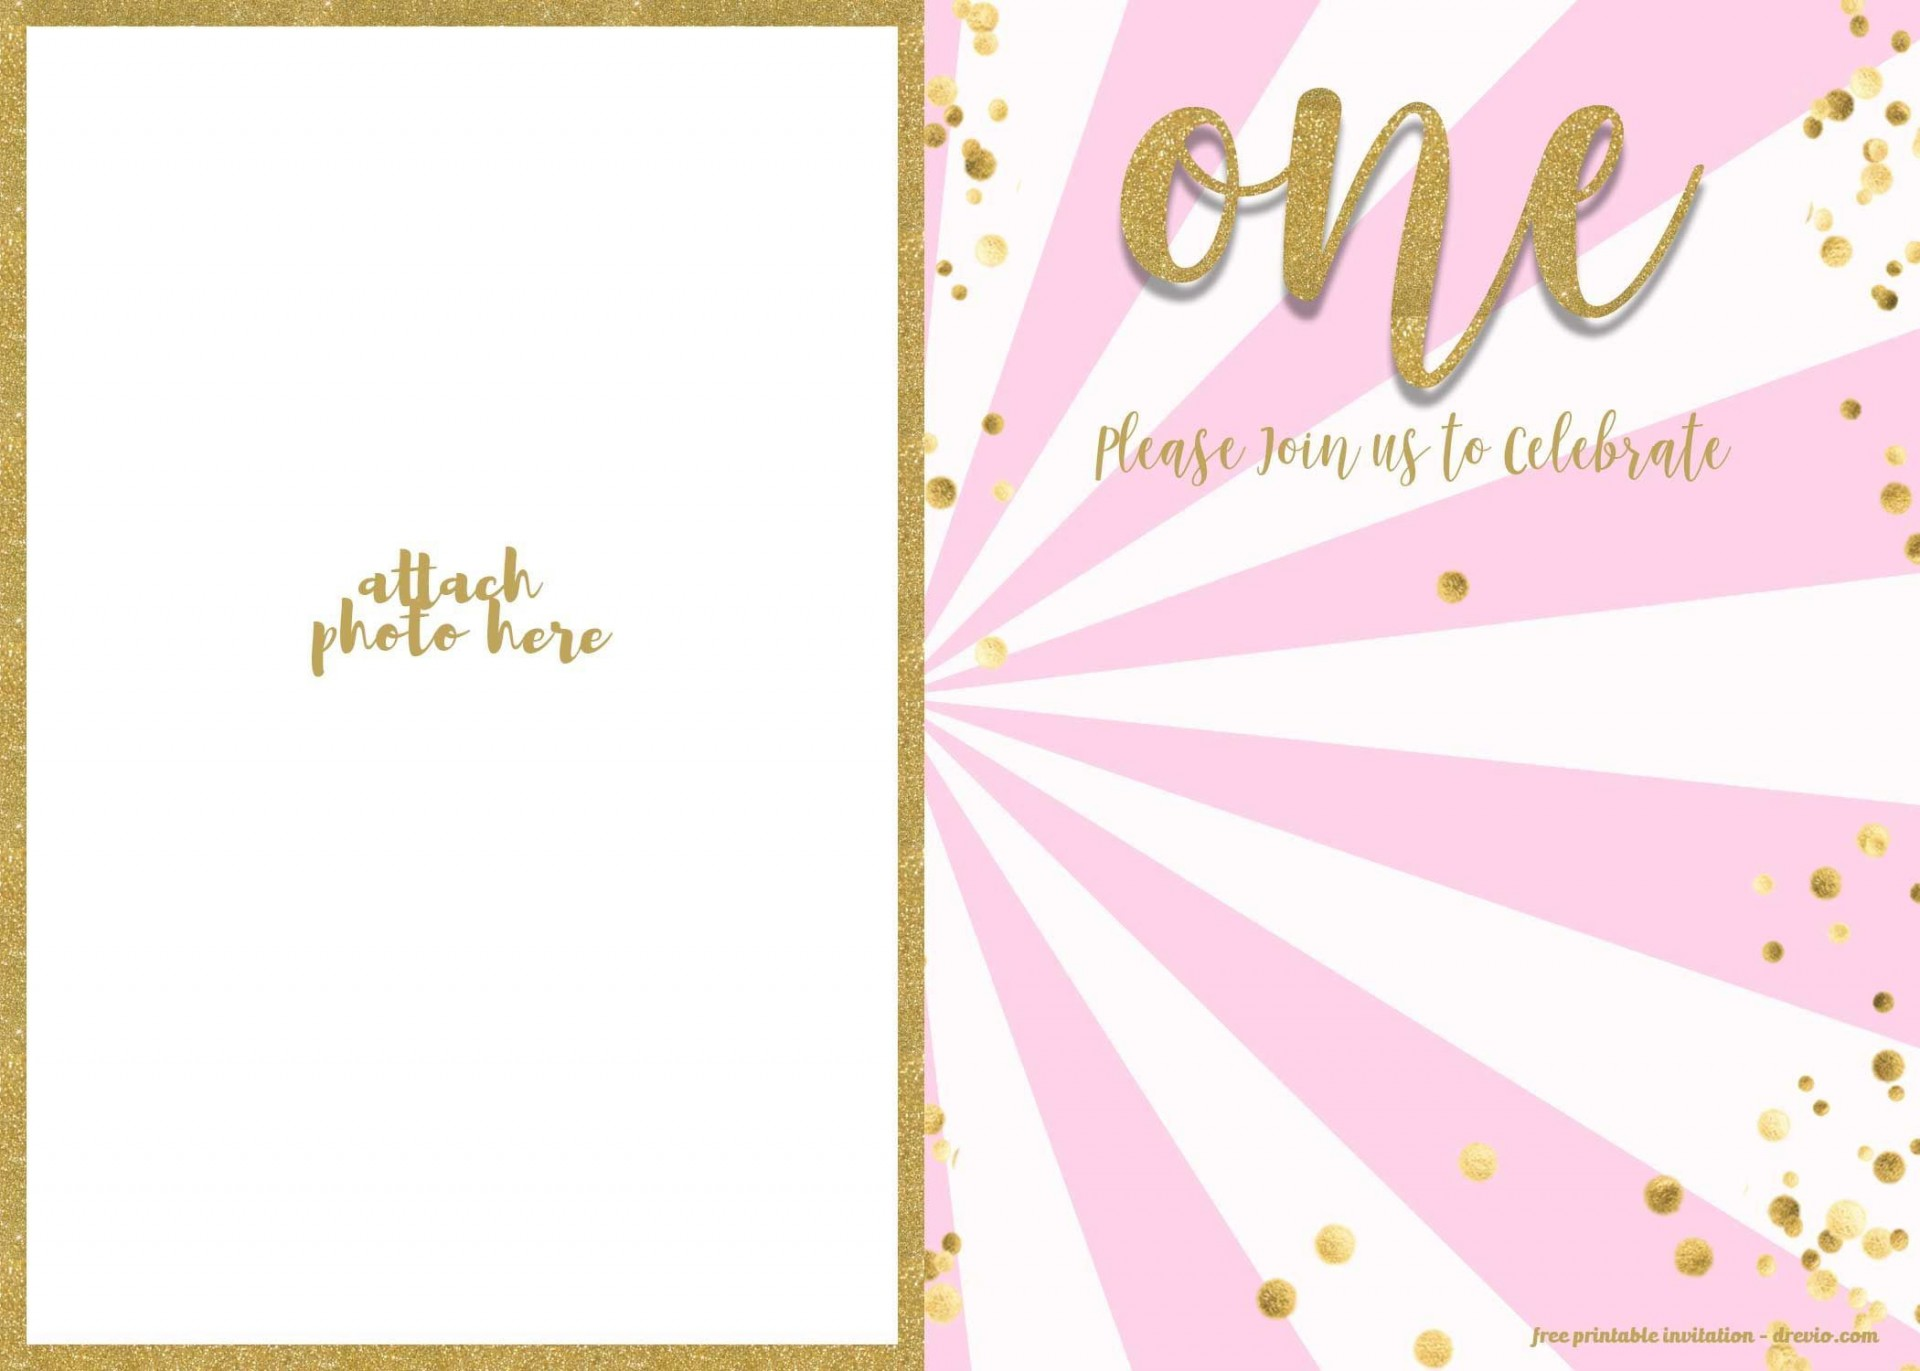 003 Top 1st Birthday Invitation Template Inspiration  Background Design Blank For Girl First Baby Boy Free Download Indian1920